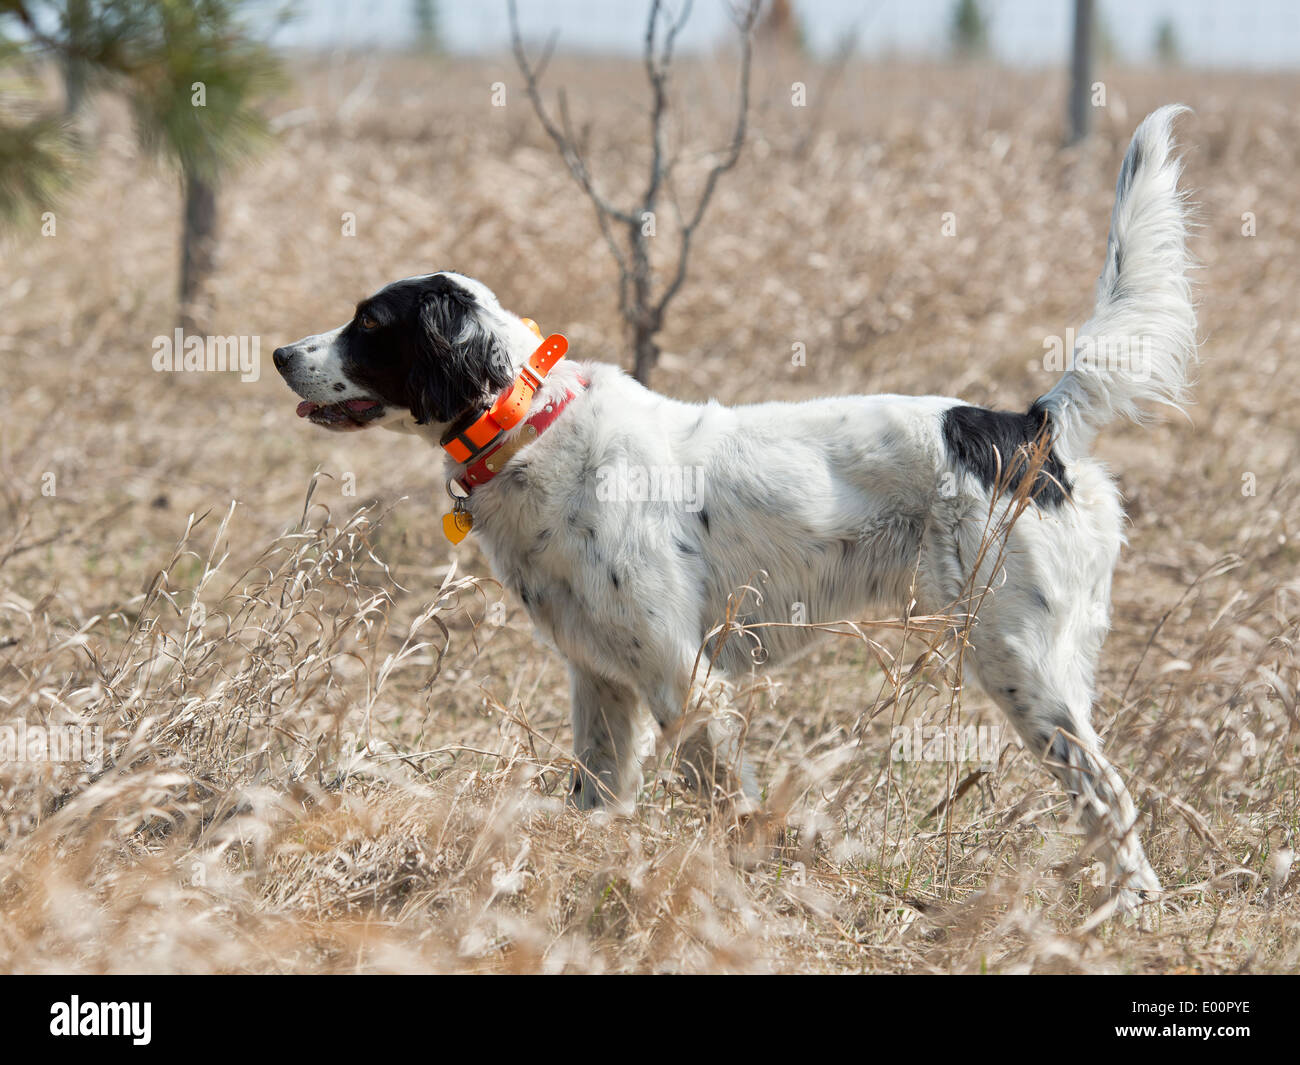 Hunting Dog on Point - Stock Image